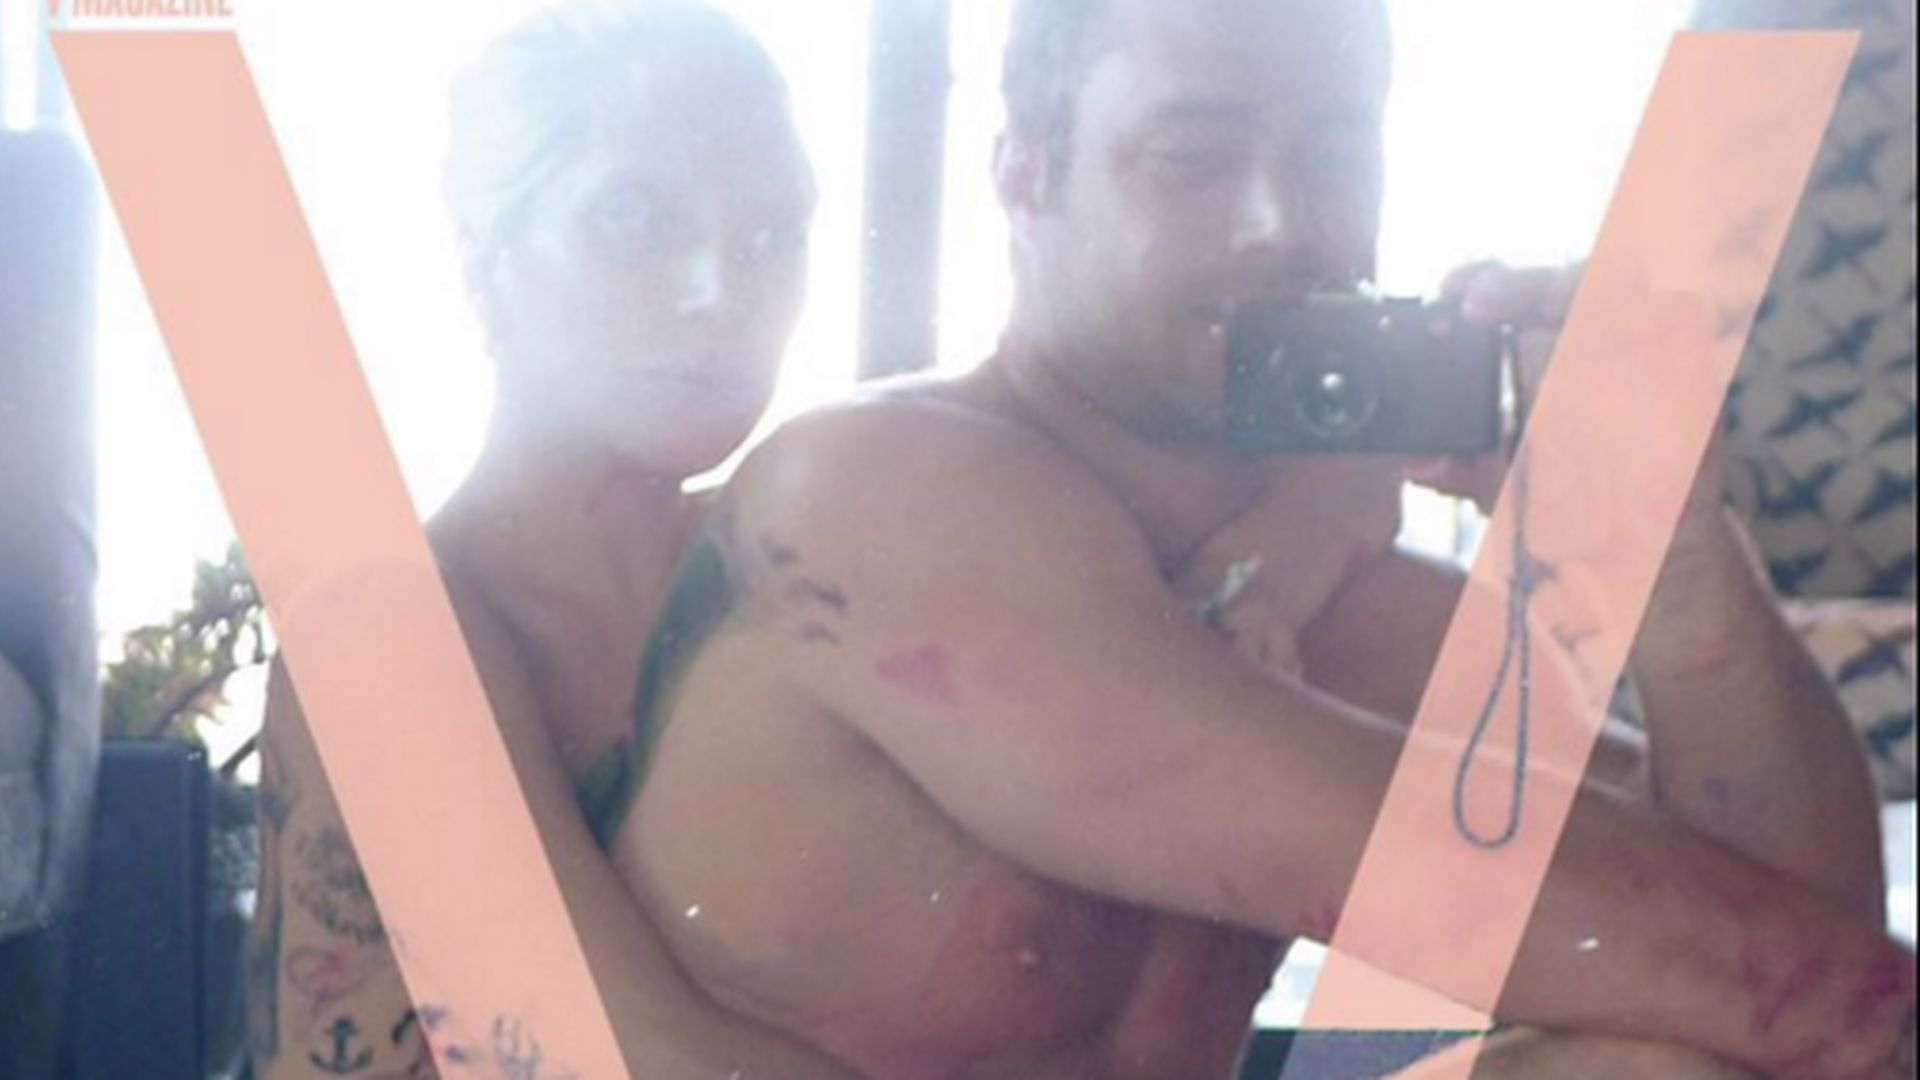 After-Sex-Selfie: Lady GaGa & Taylor umschlingen sich nackt ...: promiflash.de/kommentare/after-sex-selfie-lady-gaga-und-taylor...